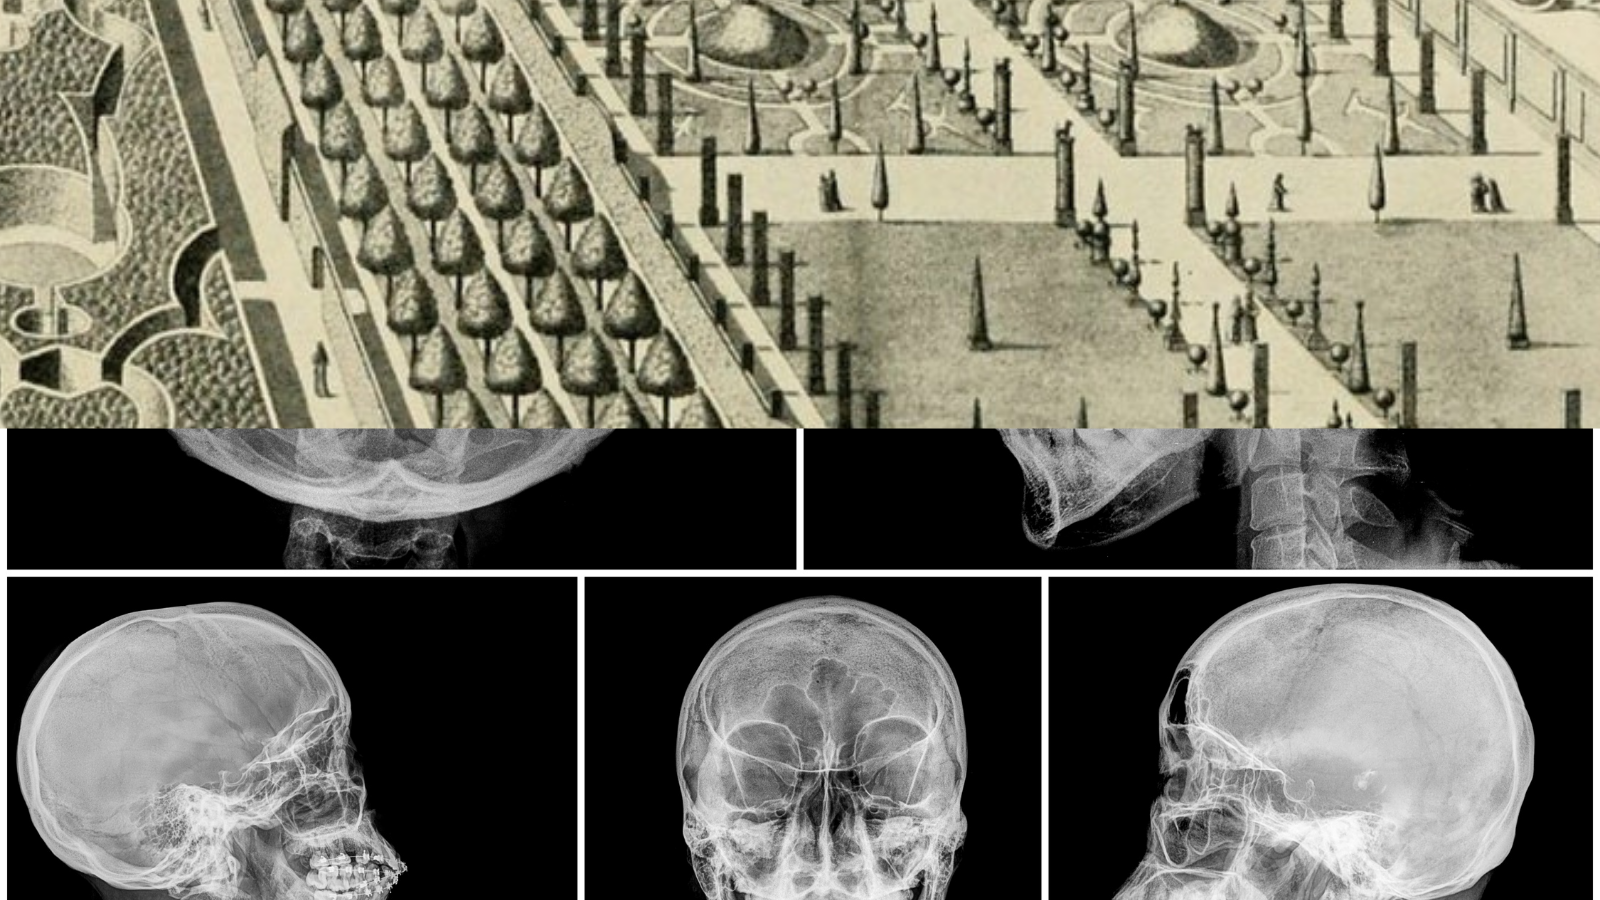 A collage image with a black and white illustration of a Renaissance garden in the top half and an x-ray of a skull from various angles in the bottom half